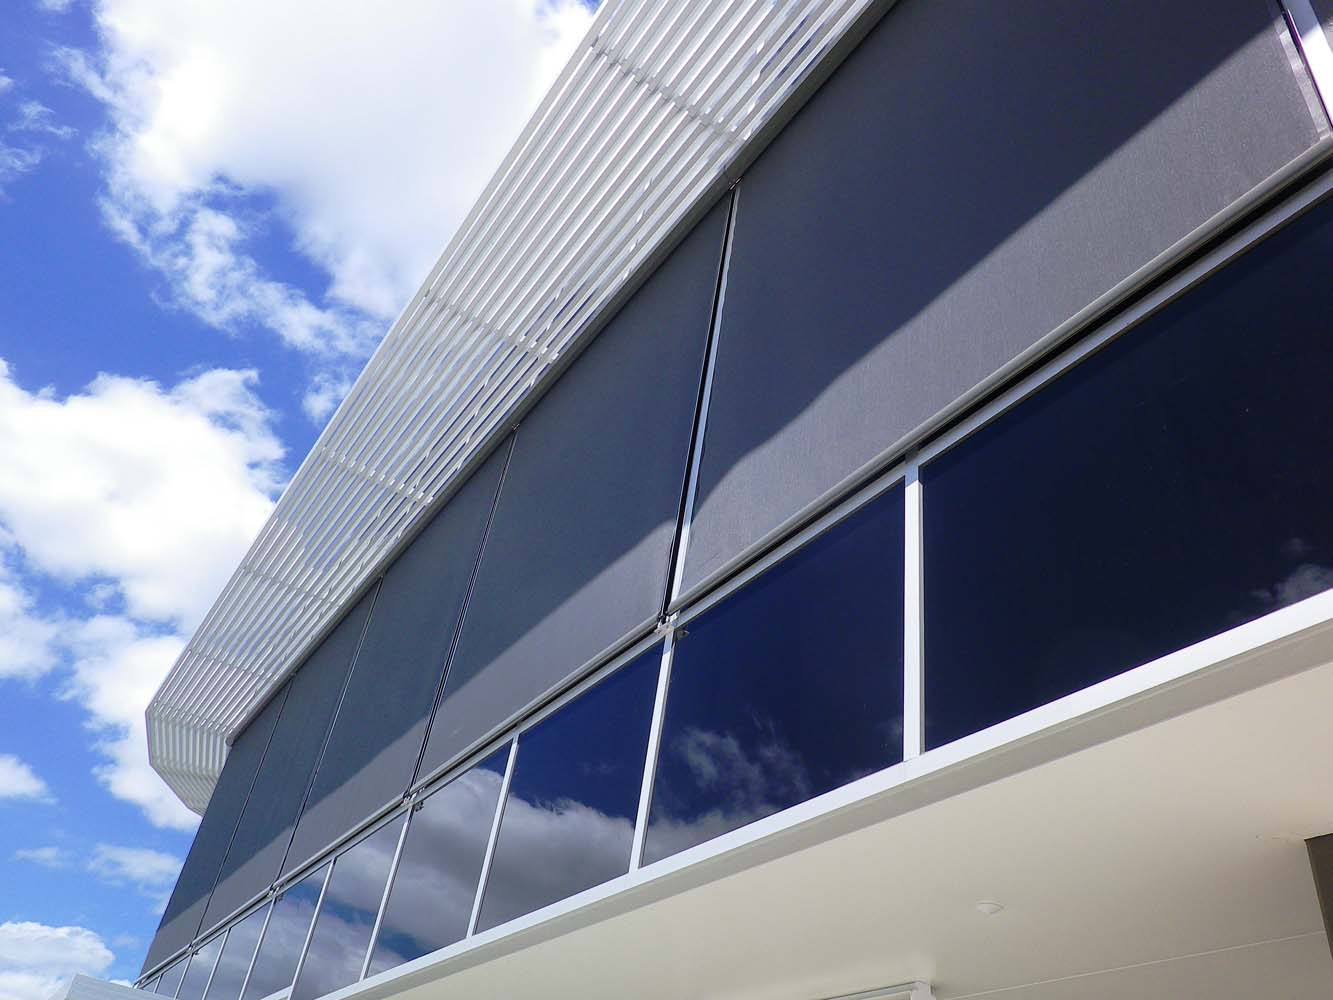 COMMERCIAL AWNING 12